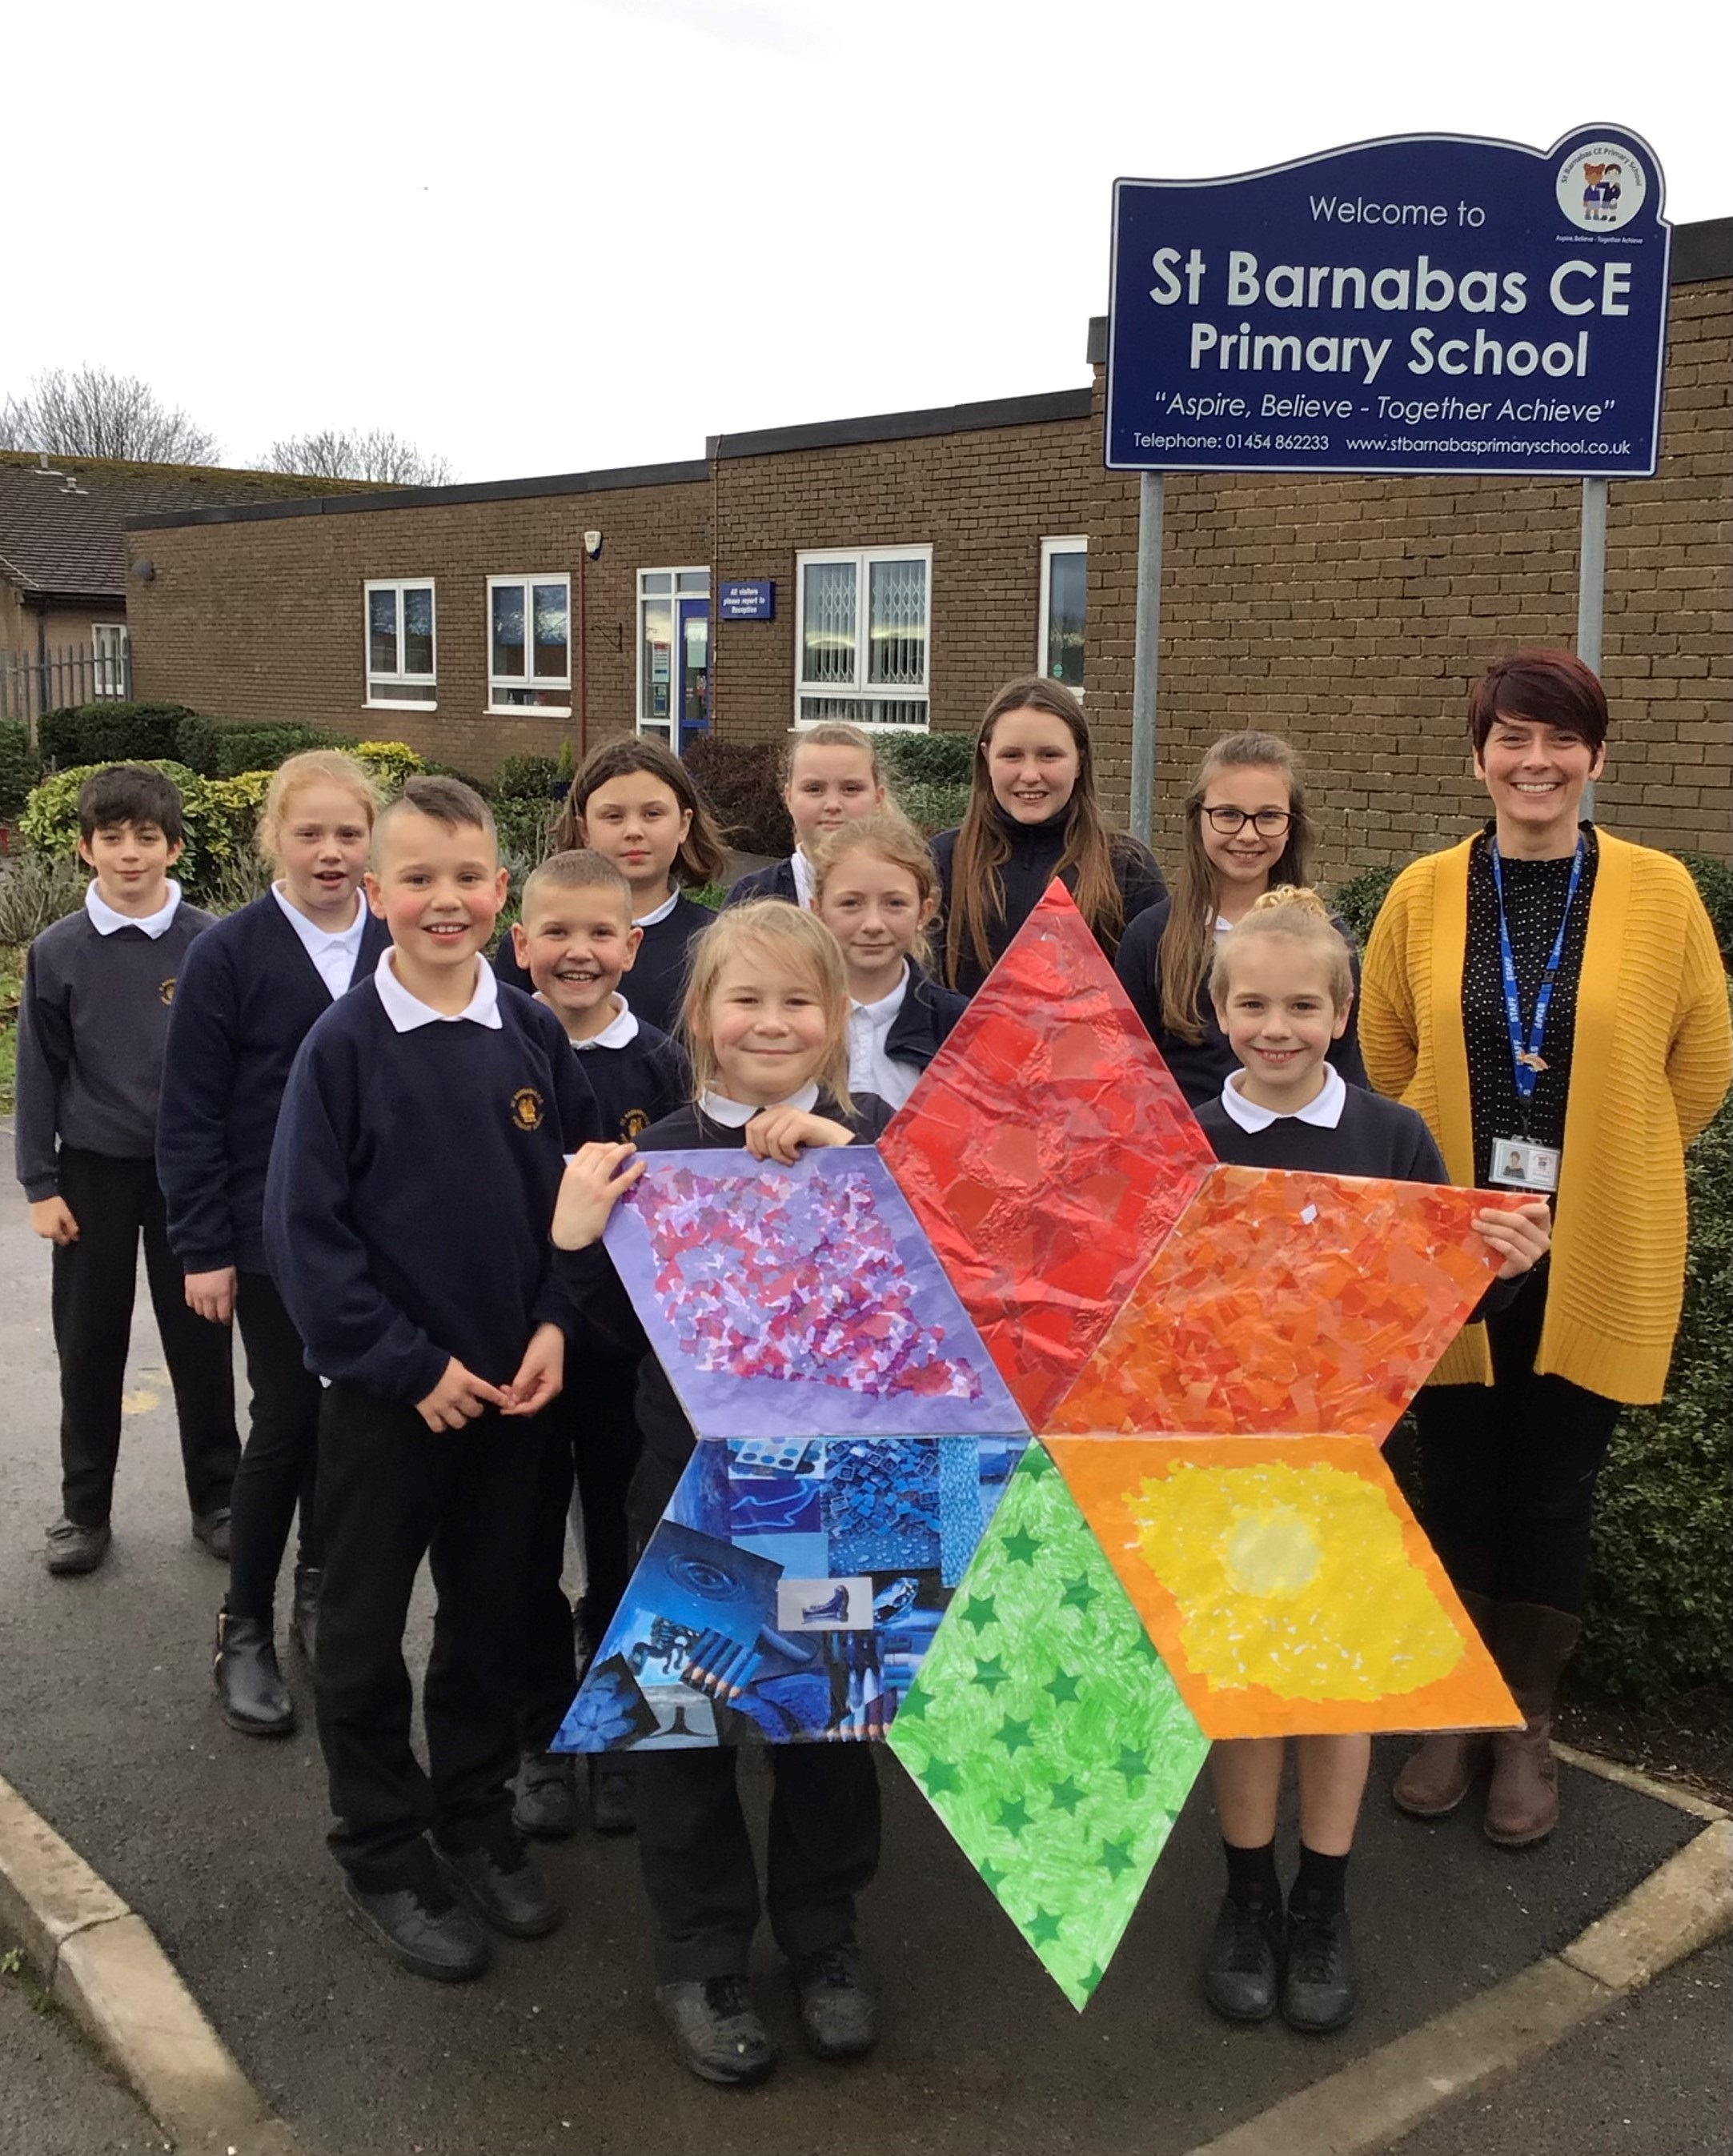 Some pupils from St Barnabas Primary with a rainbow star